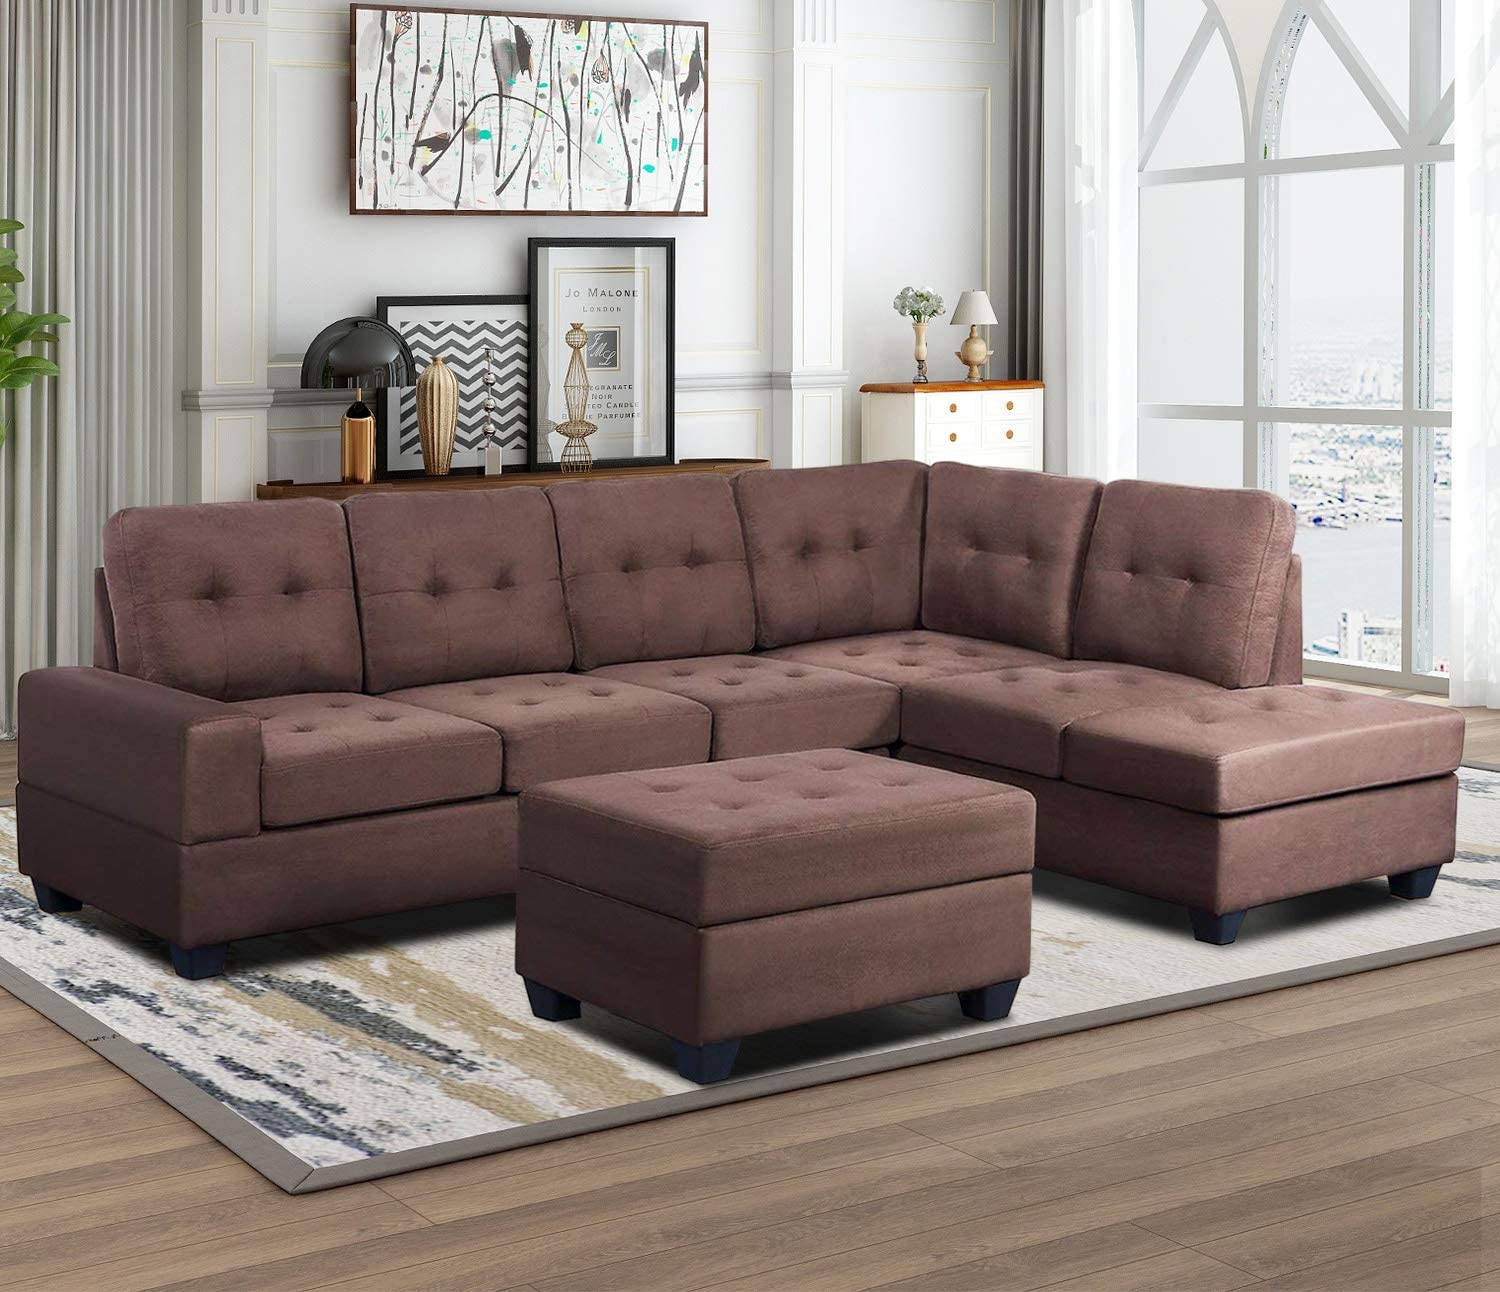 Sectional Sofa 3-Seat with Chaise Lounge and Storage Ottoman